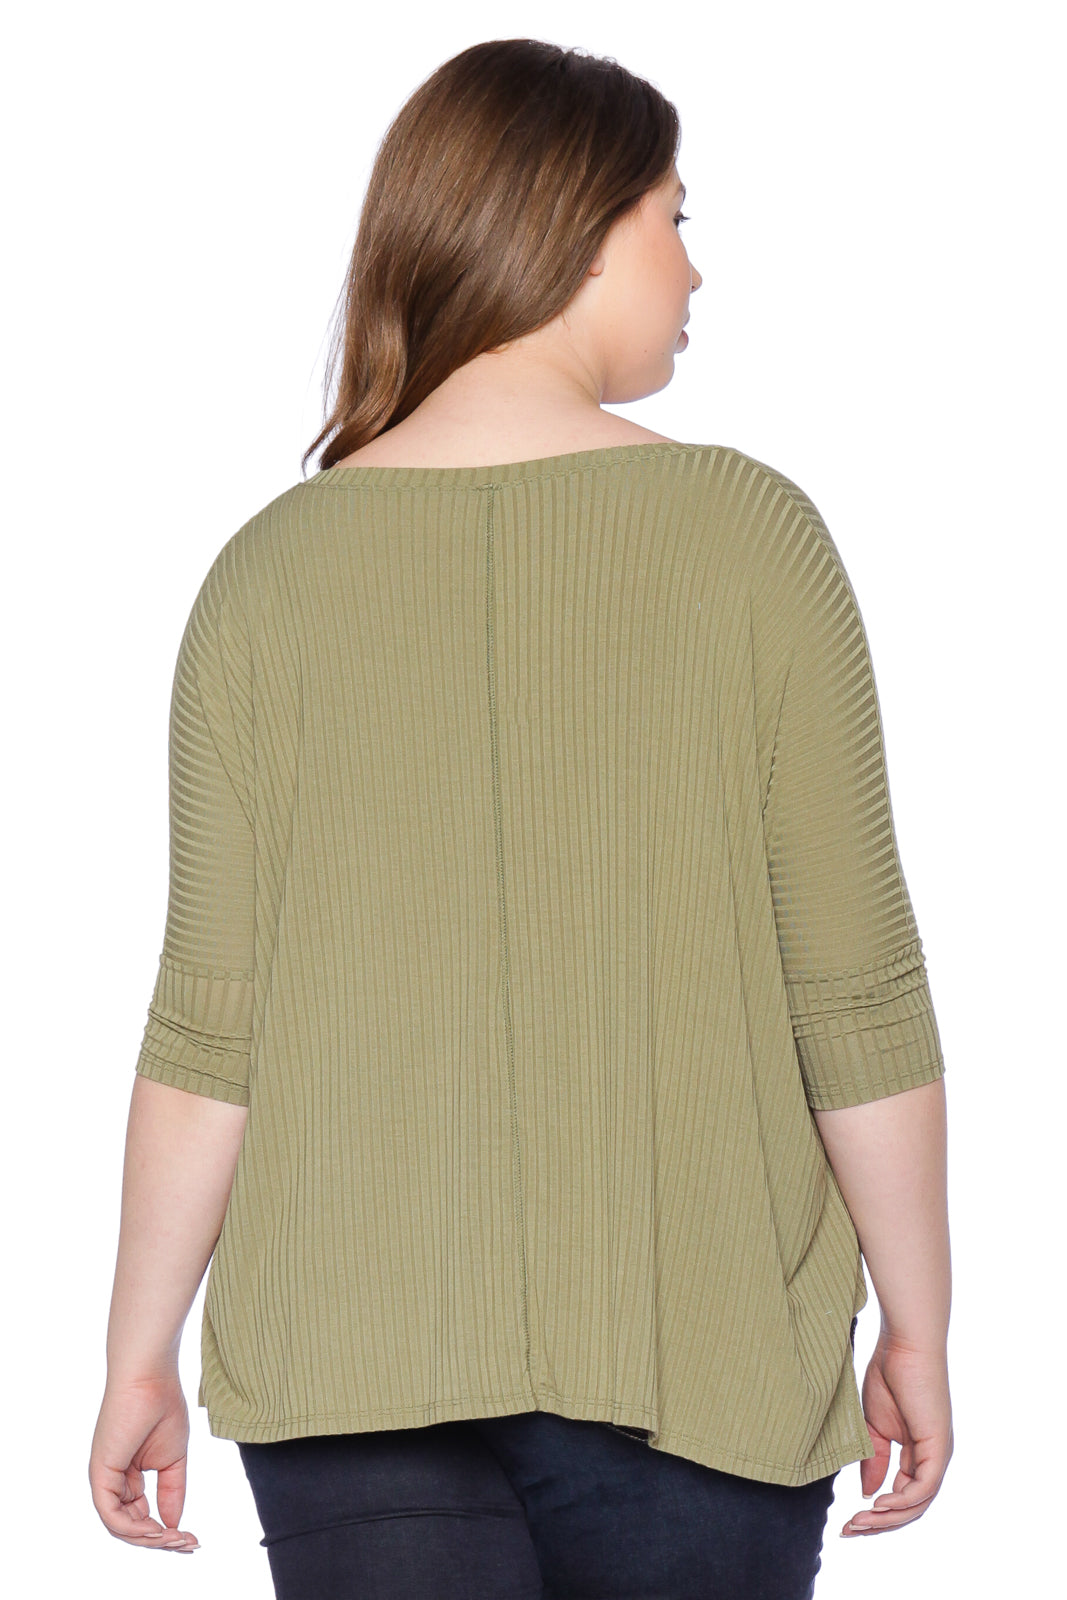 The Ribbed V-Neck - DARK OLIVE